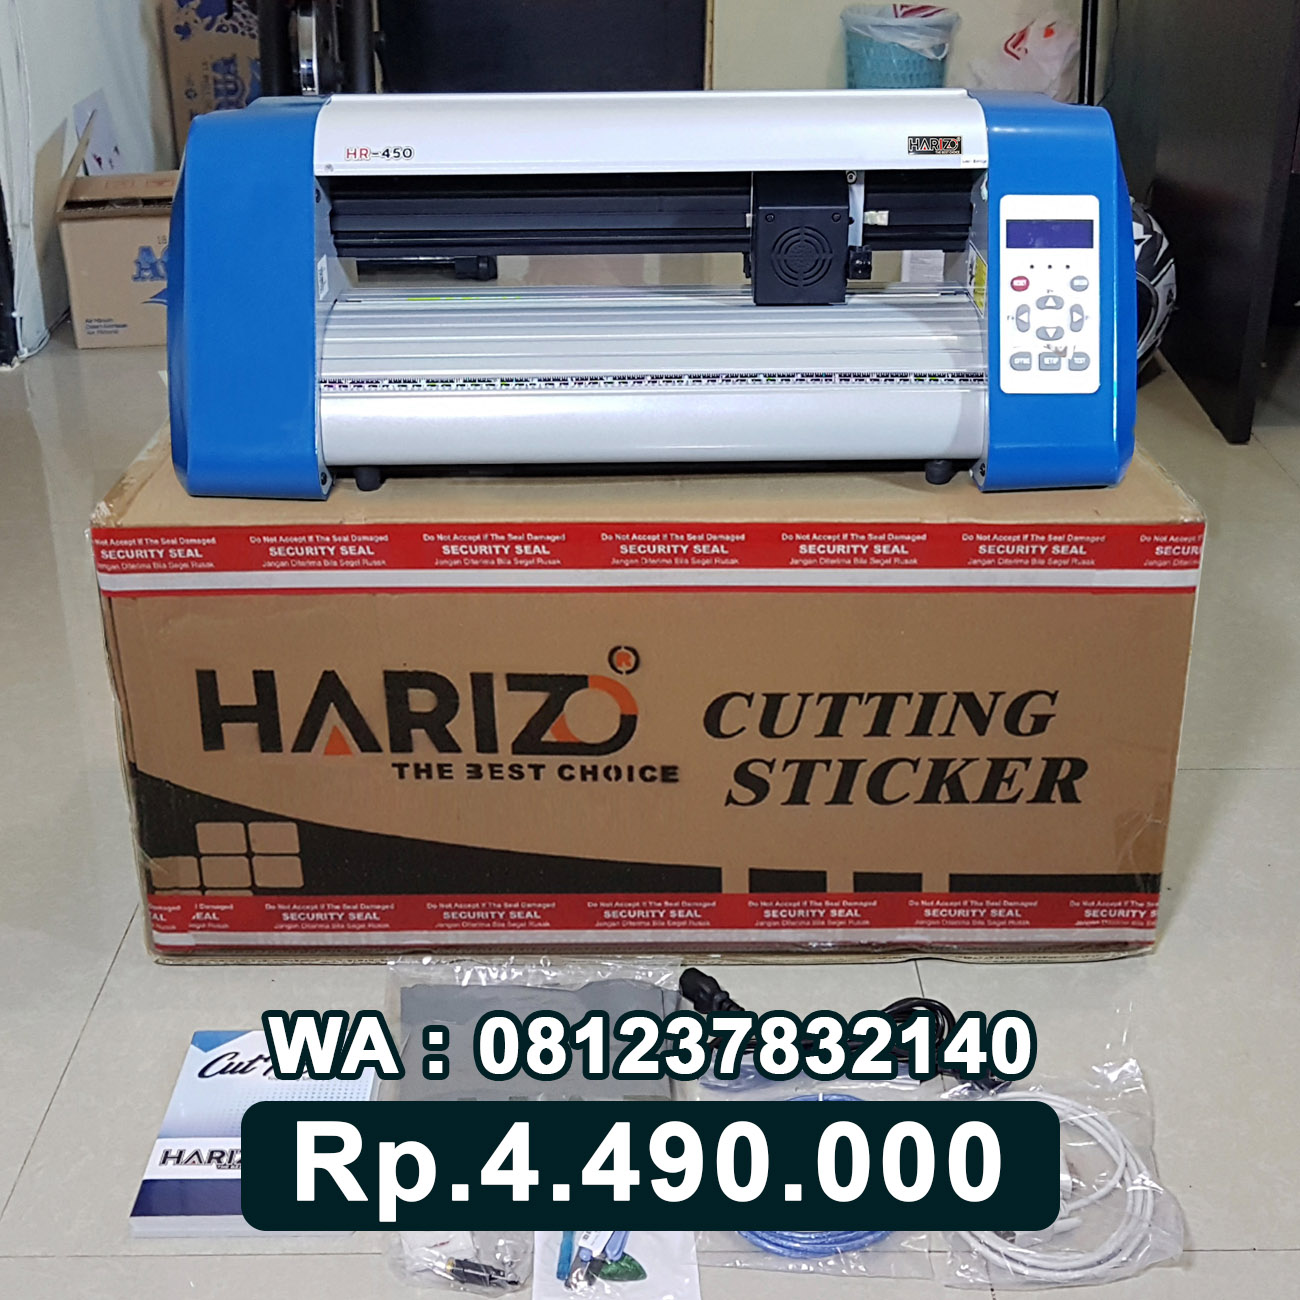 JUAL MESIN CUTTING STICKER HARIZO 450 Tabanan